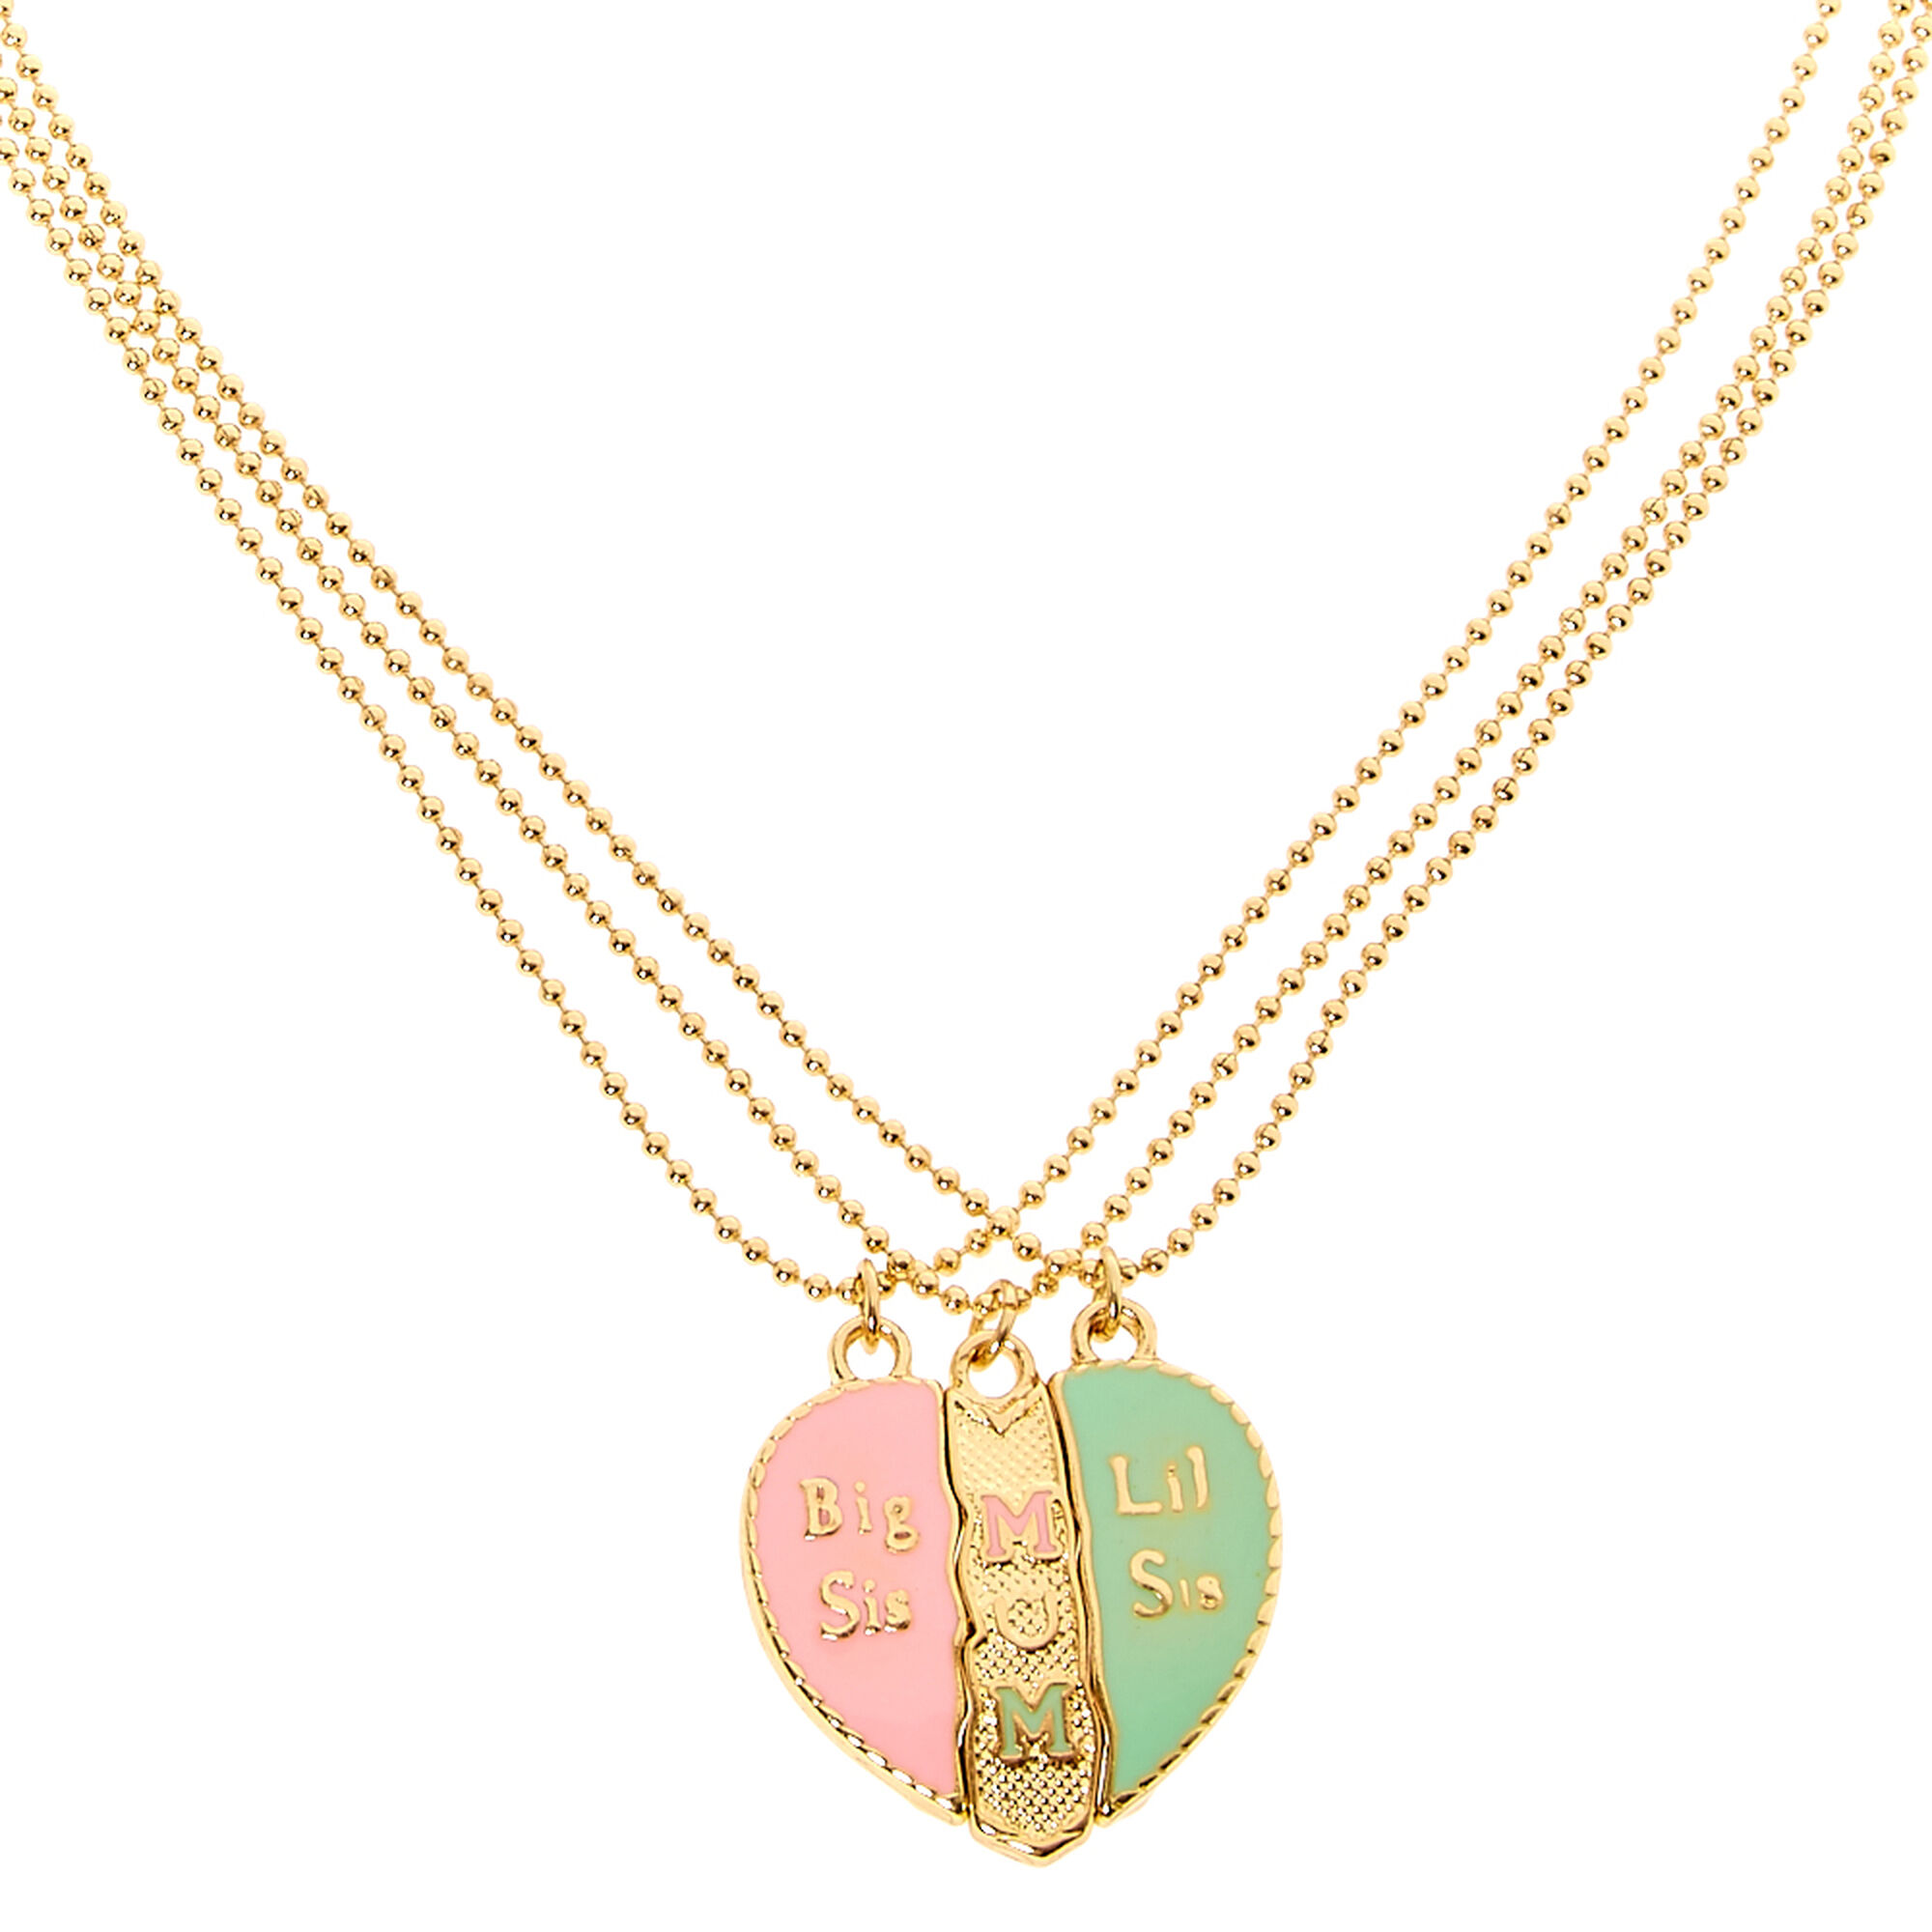 key shaped couples in gold i piece pendant necklace love lock and you couple heart original two products